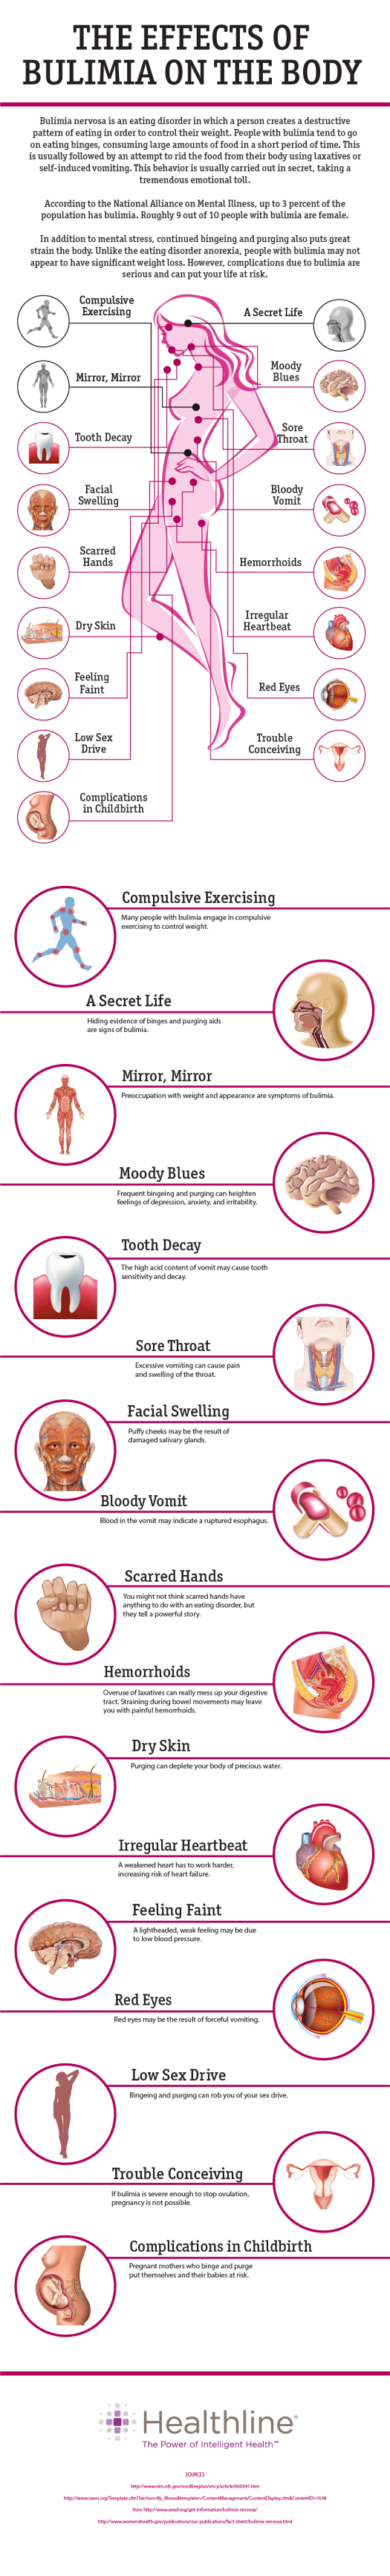 The Effects of Bulimia on the Body